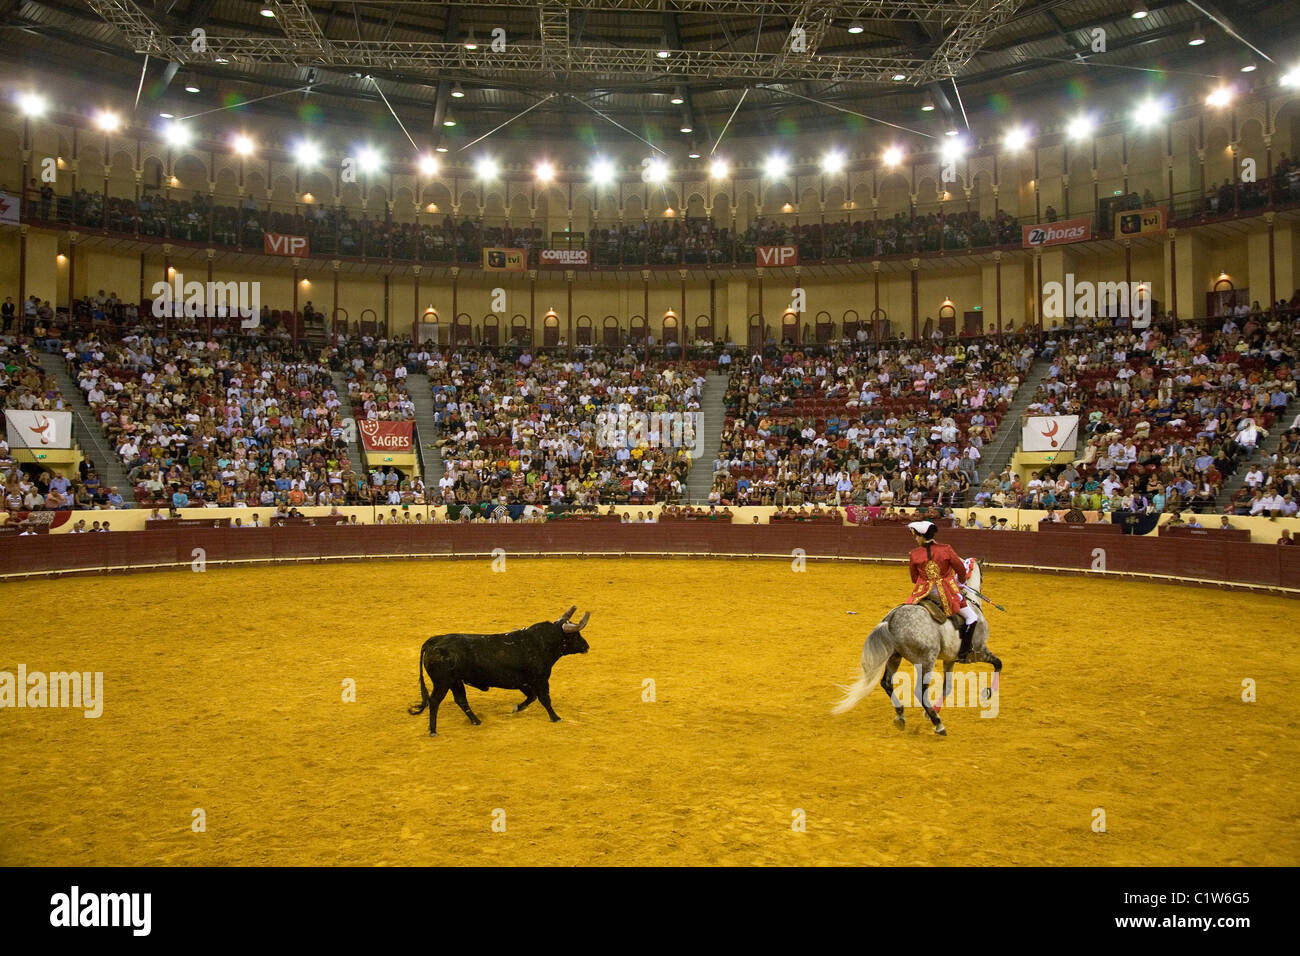 Portuguese style bullfighting at the Campo Pequeno in Lisbon, Portugal. - Stock Image